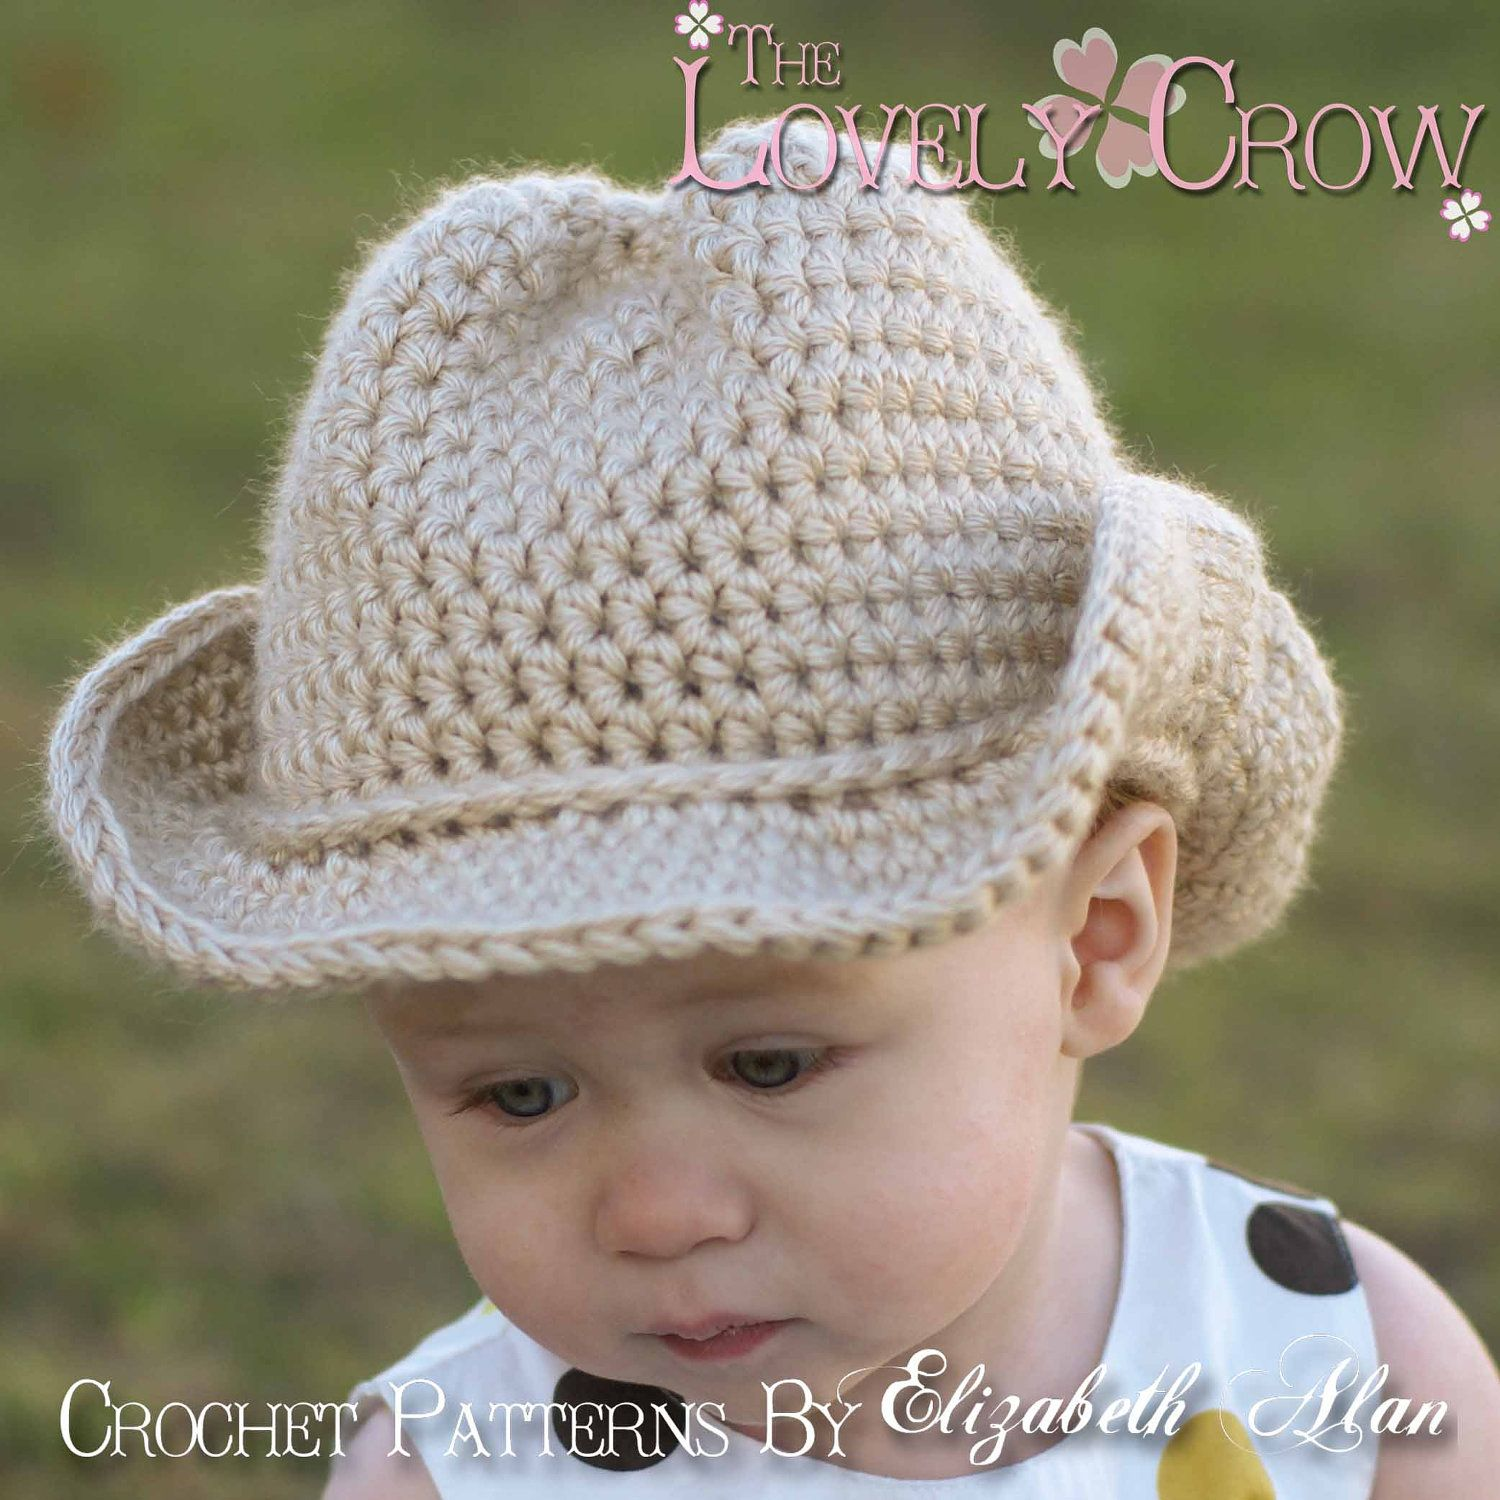 Baby Cowboy Crochet Pattern Cowboy Hat For Boot Scootn Cowboy Hat